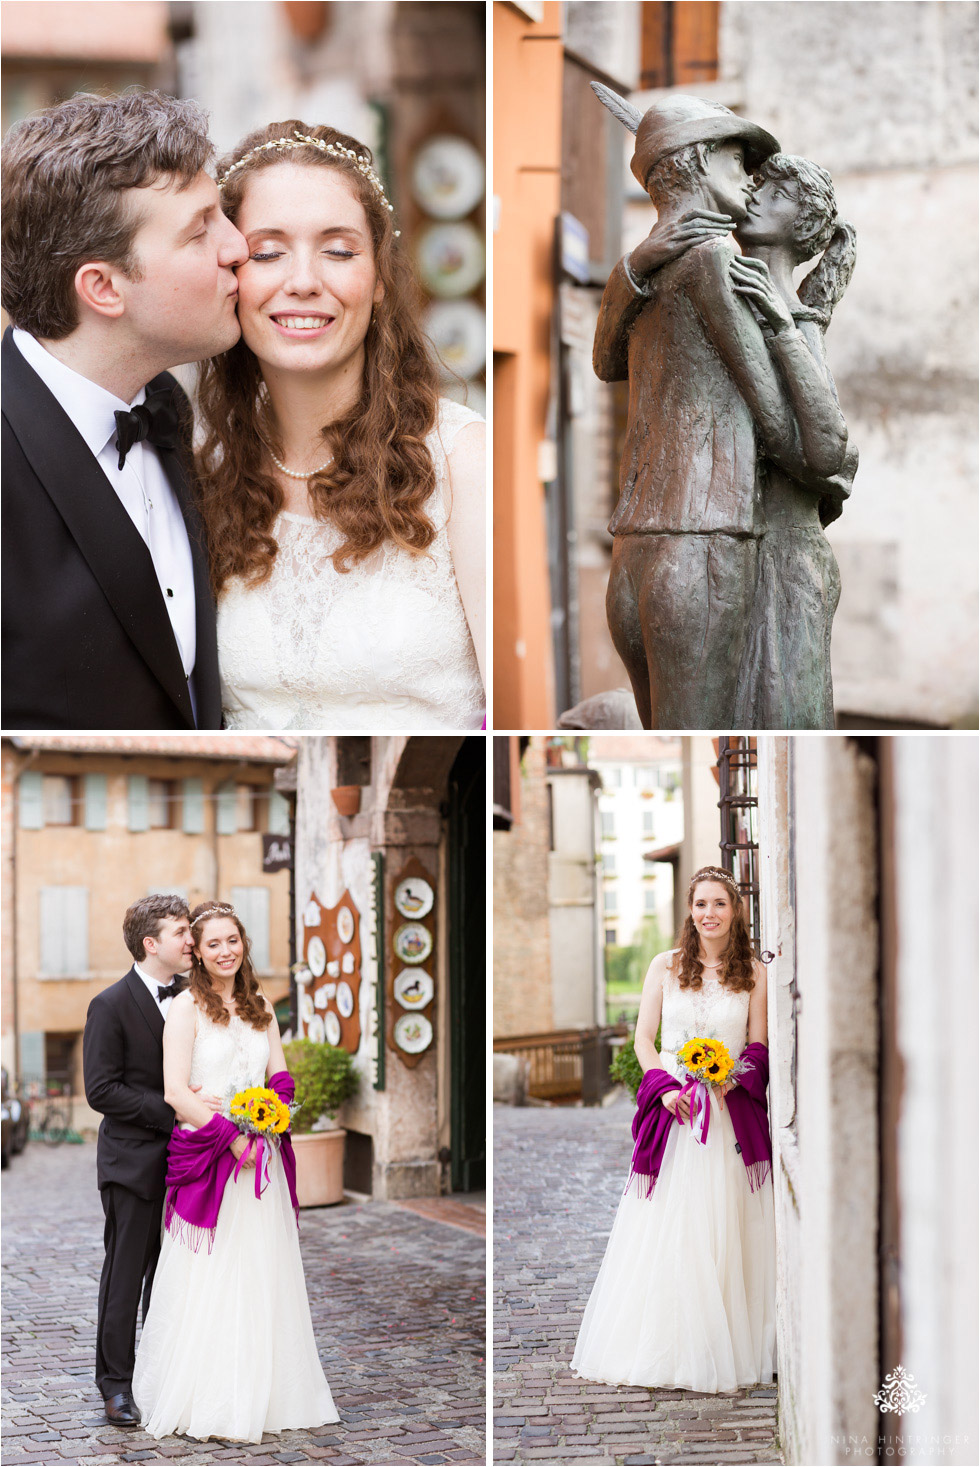 Wedding couple portraits in a beautiful historic town,  Bassano del Grappa, Italy - Blog of Nina Hintringer Photography - Wedding Photography, Wedding Reportage and Destination Weddings